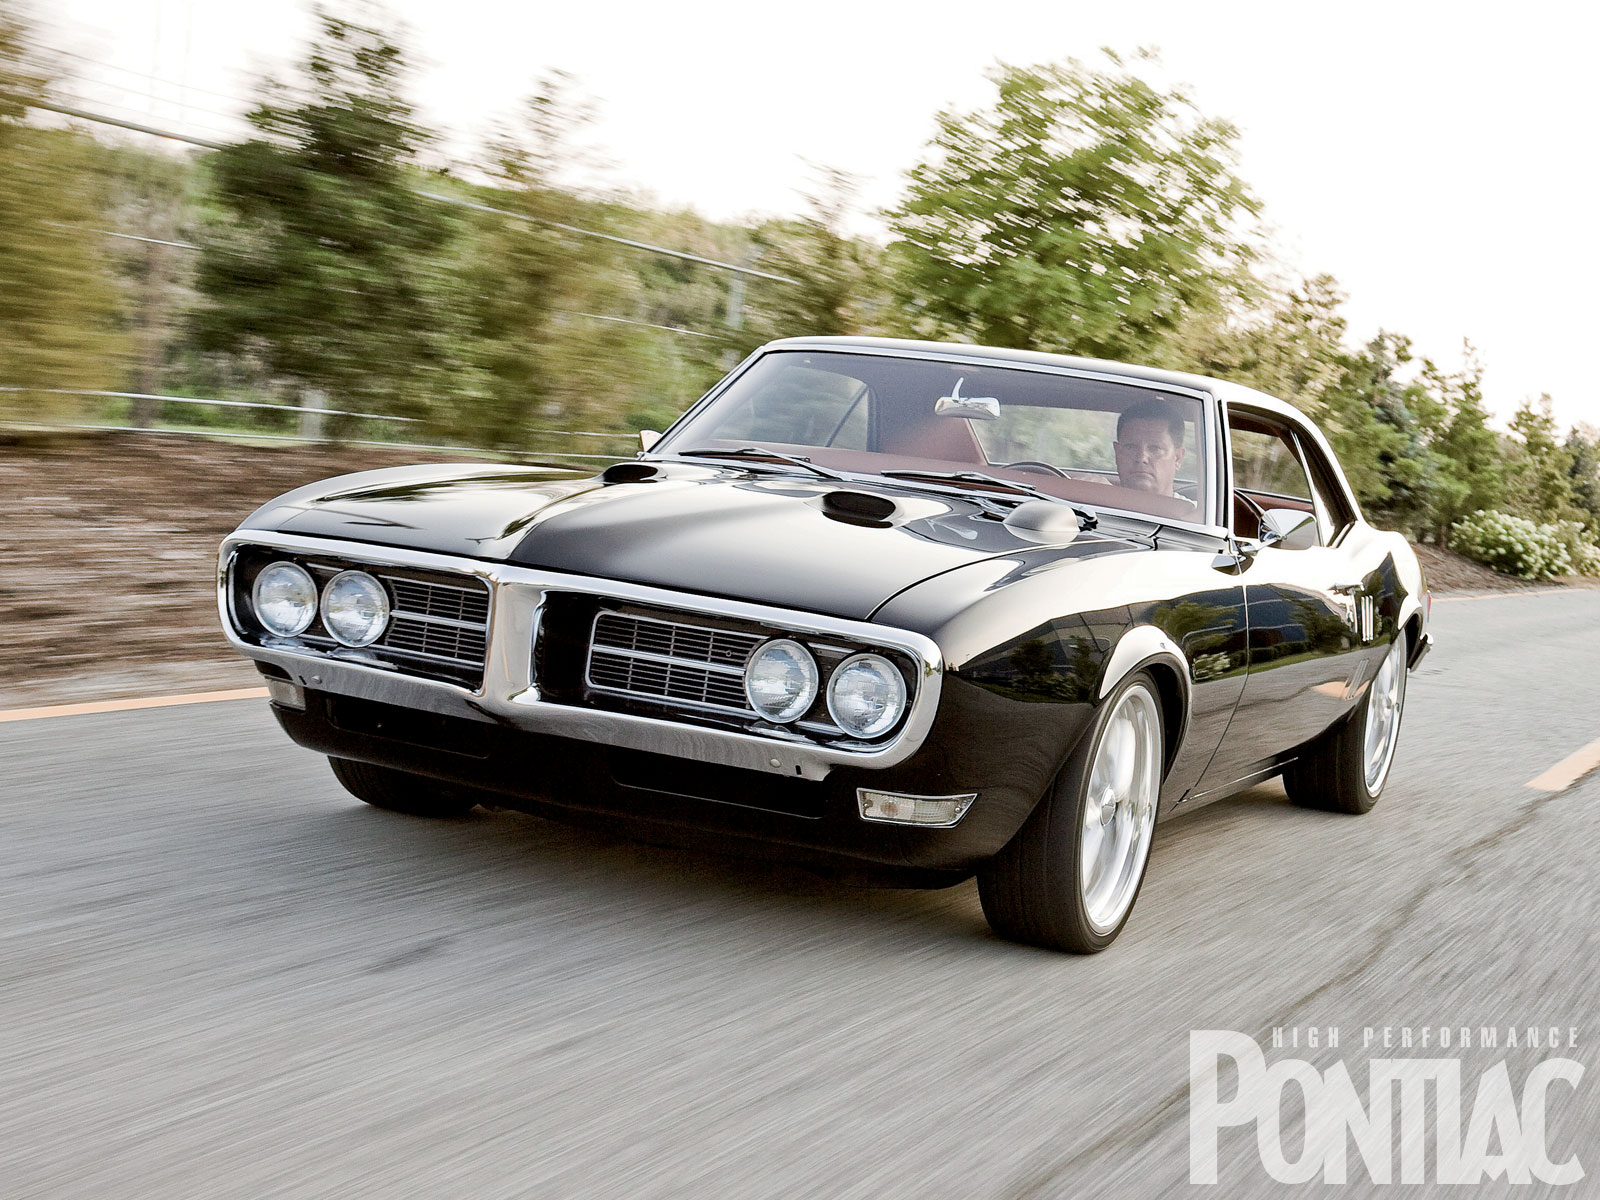 Pontiac Firebird Coupe 1968